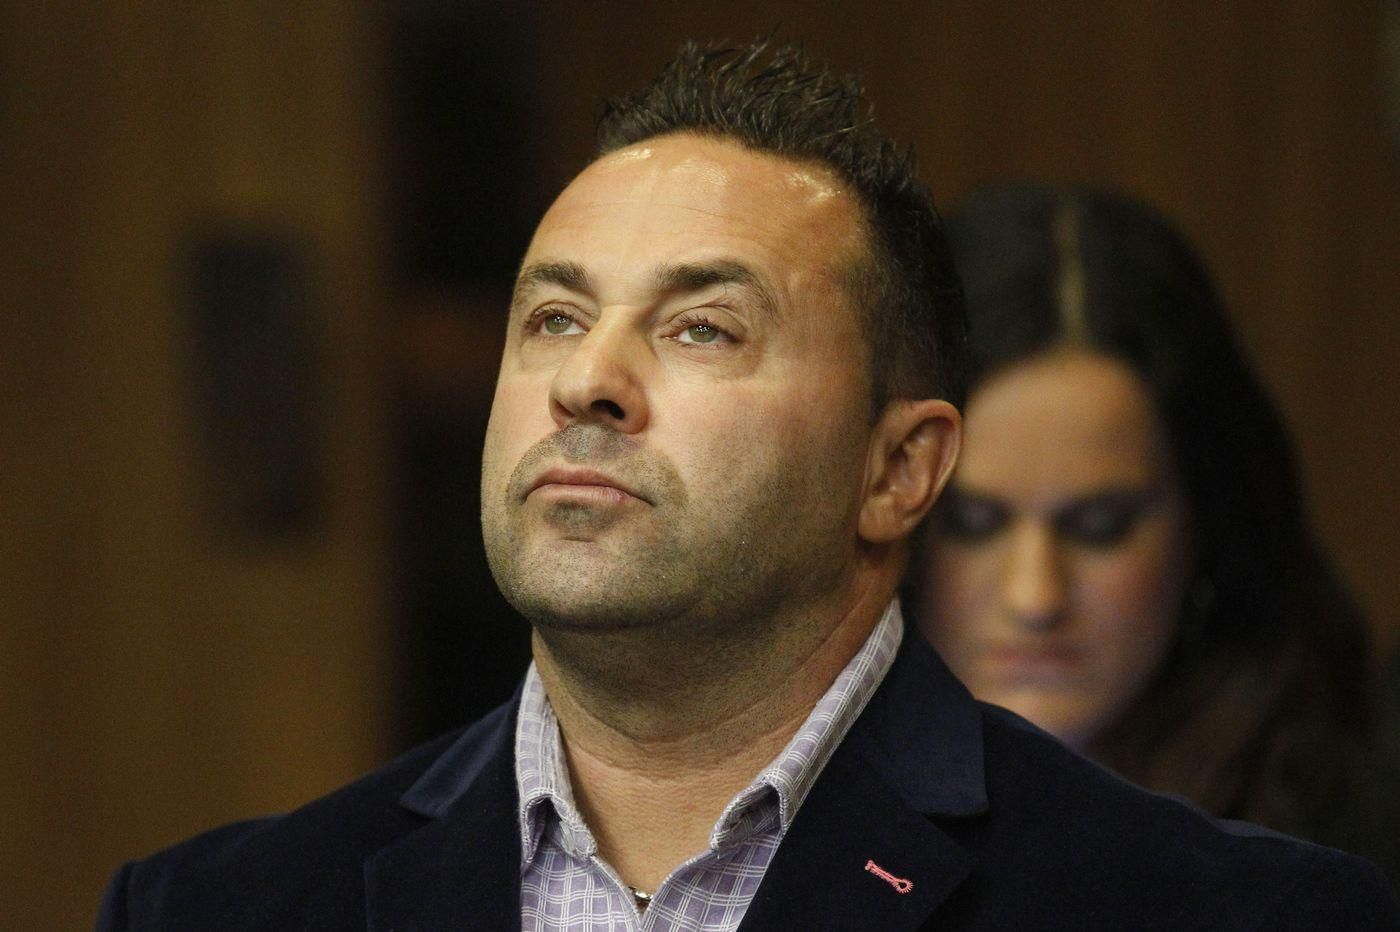 Joe Giudice Is Really Sad About Missing Firstborn Gia's Graduation While In ICE Custody